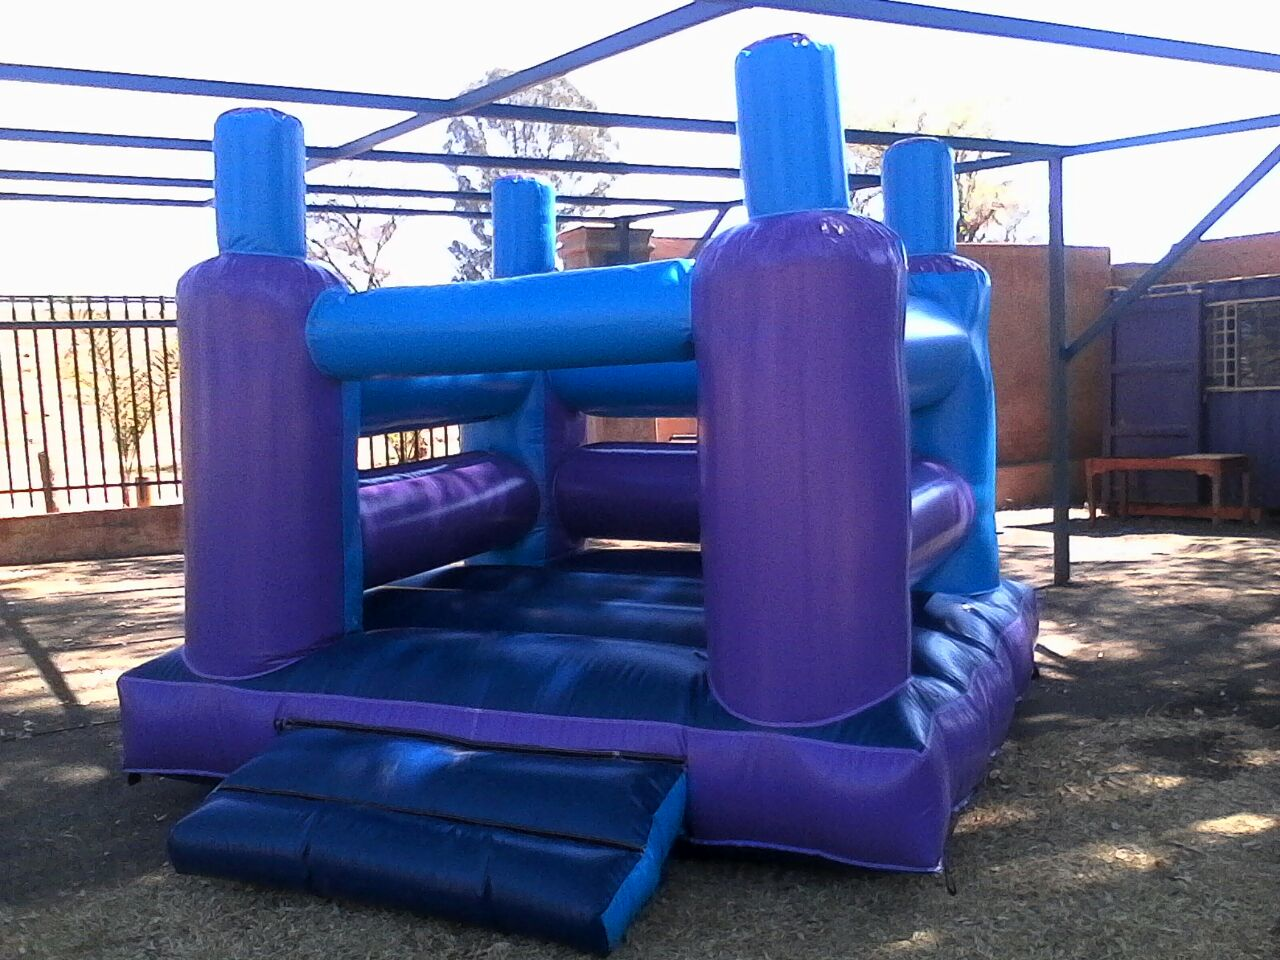 NEW TENTS; GAZEBOS AND JUMPING CASTLES FOR SALE AT BARGAIN PRICES